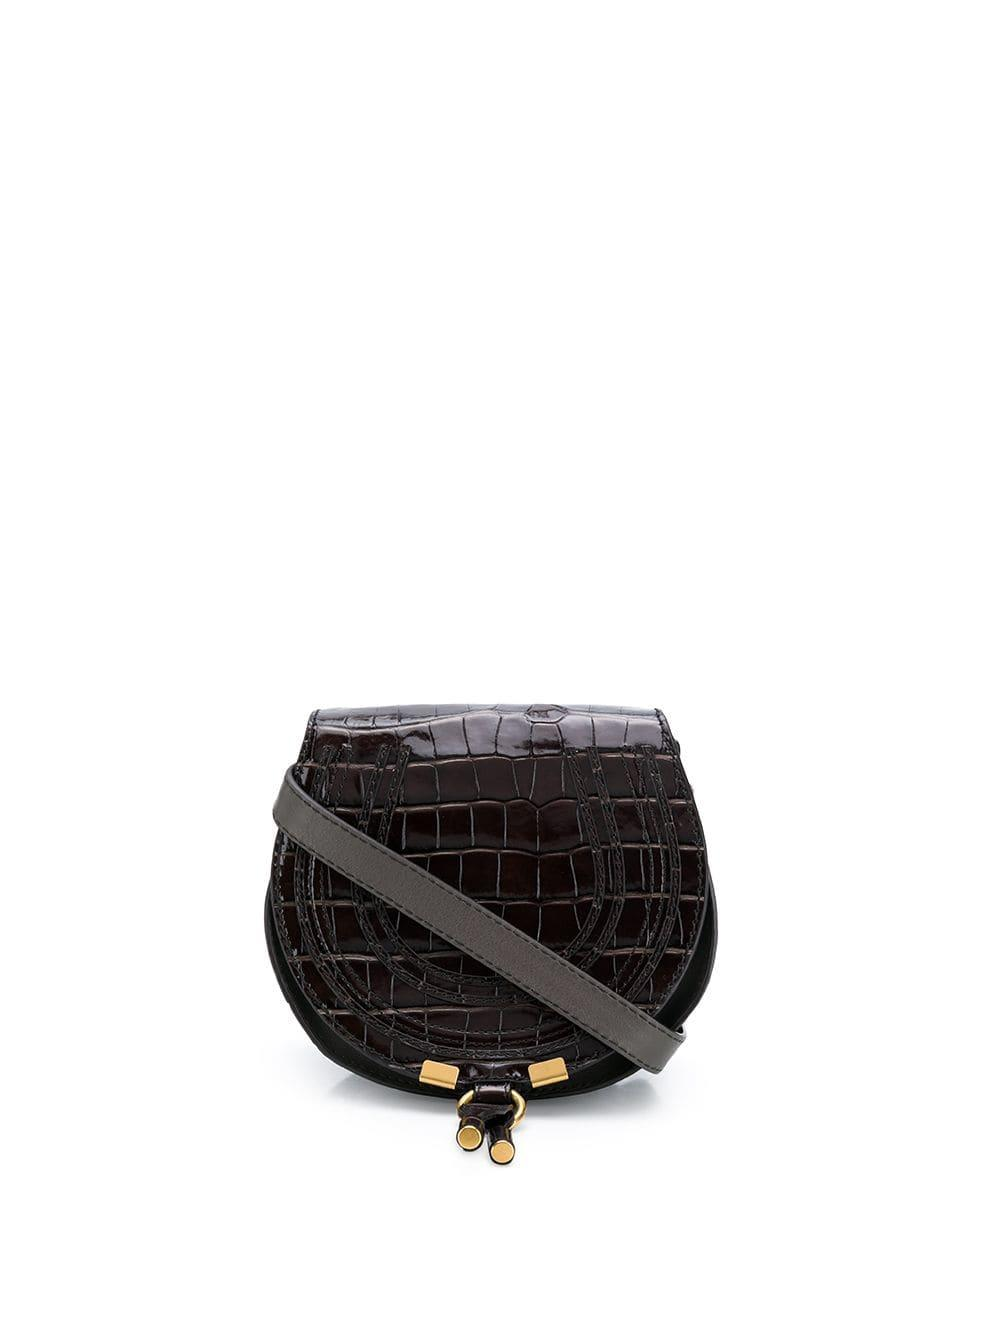 MARCIE Small Croc Shoulder Bag